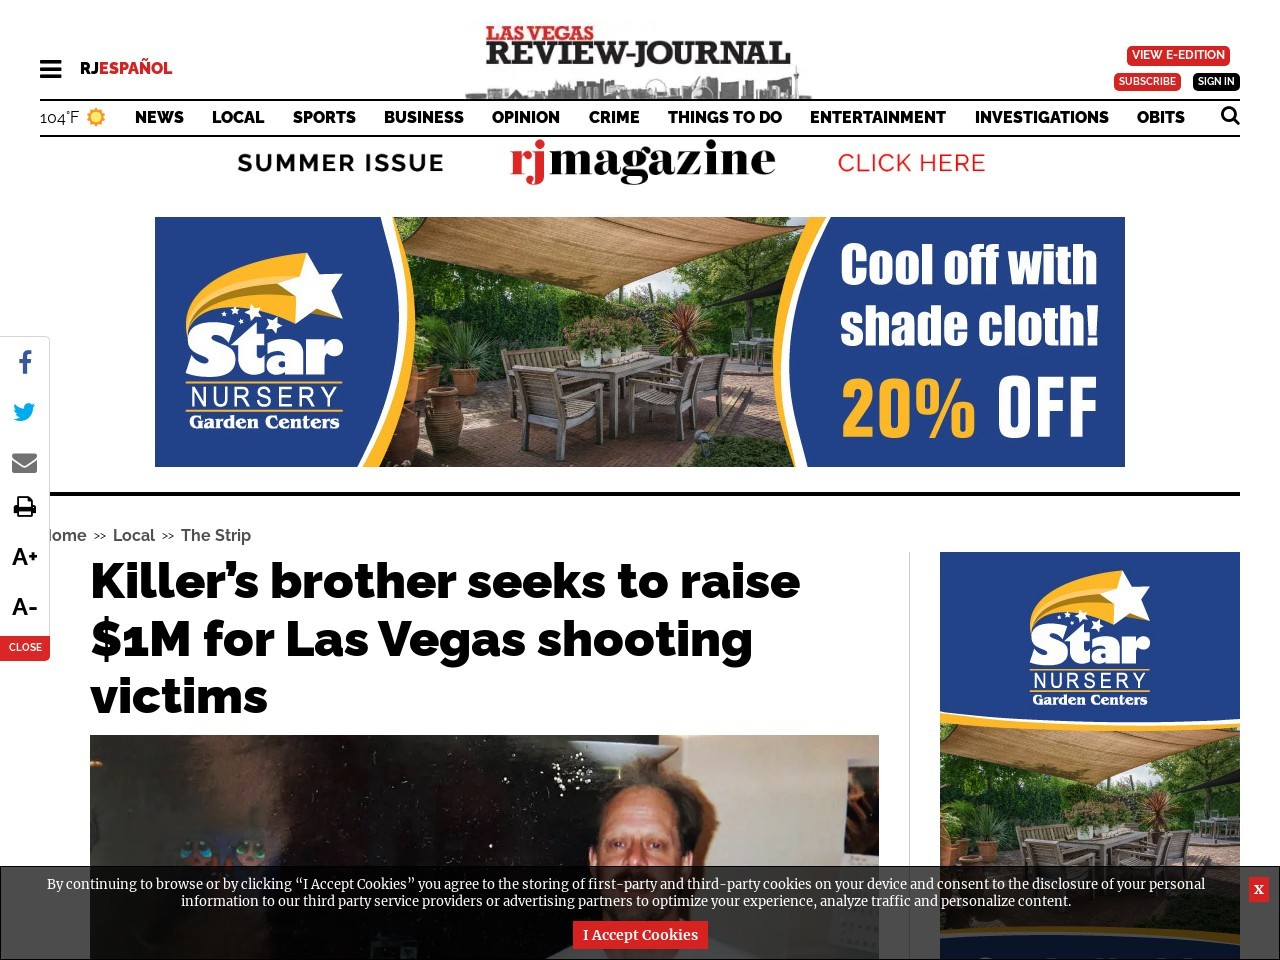 Killer's brother seeks to raise $1M for Las Vegas shooting victims